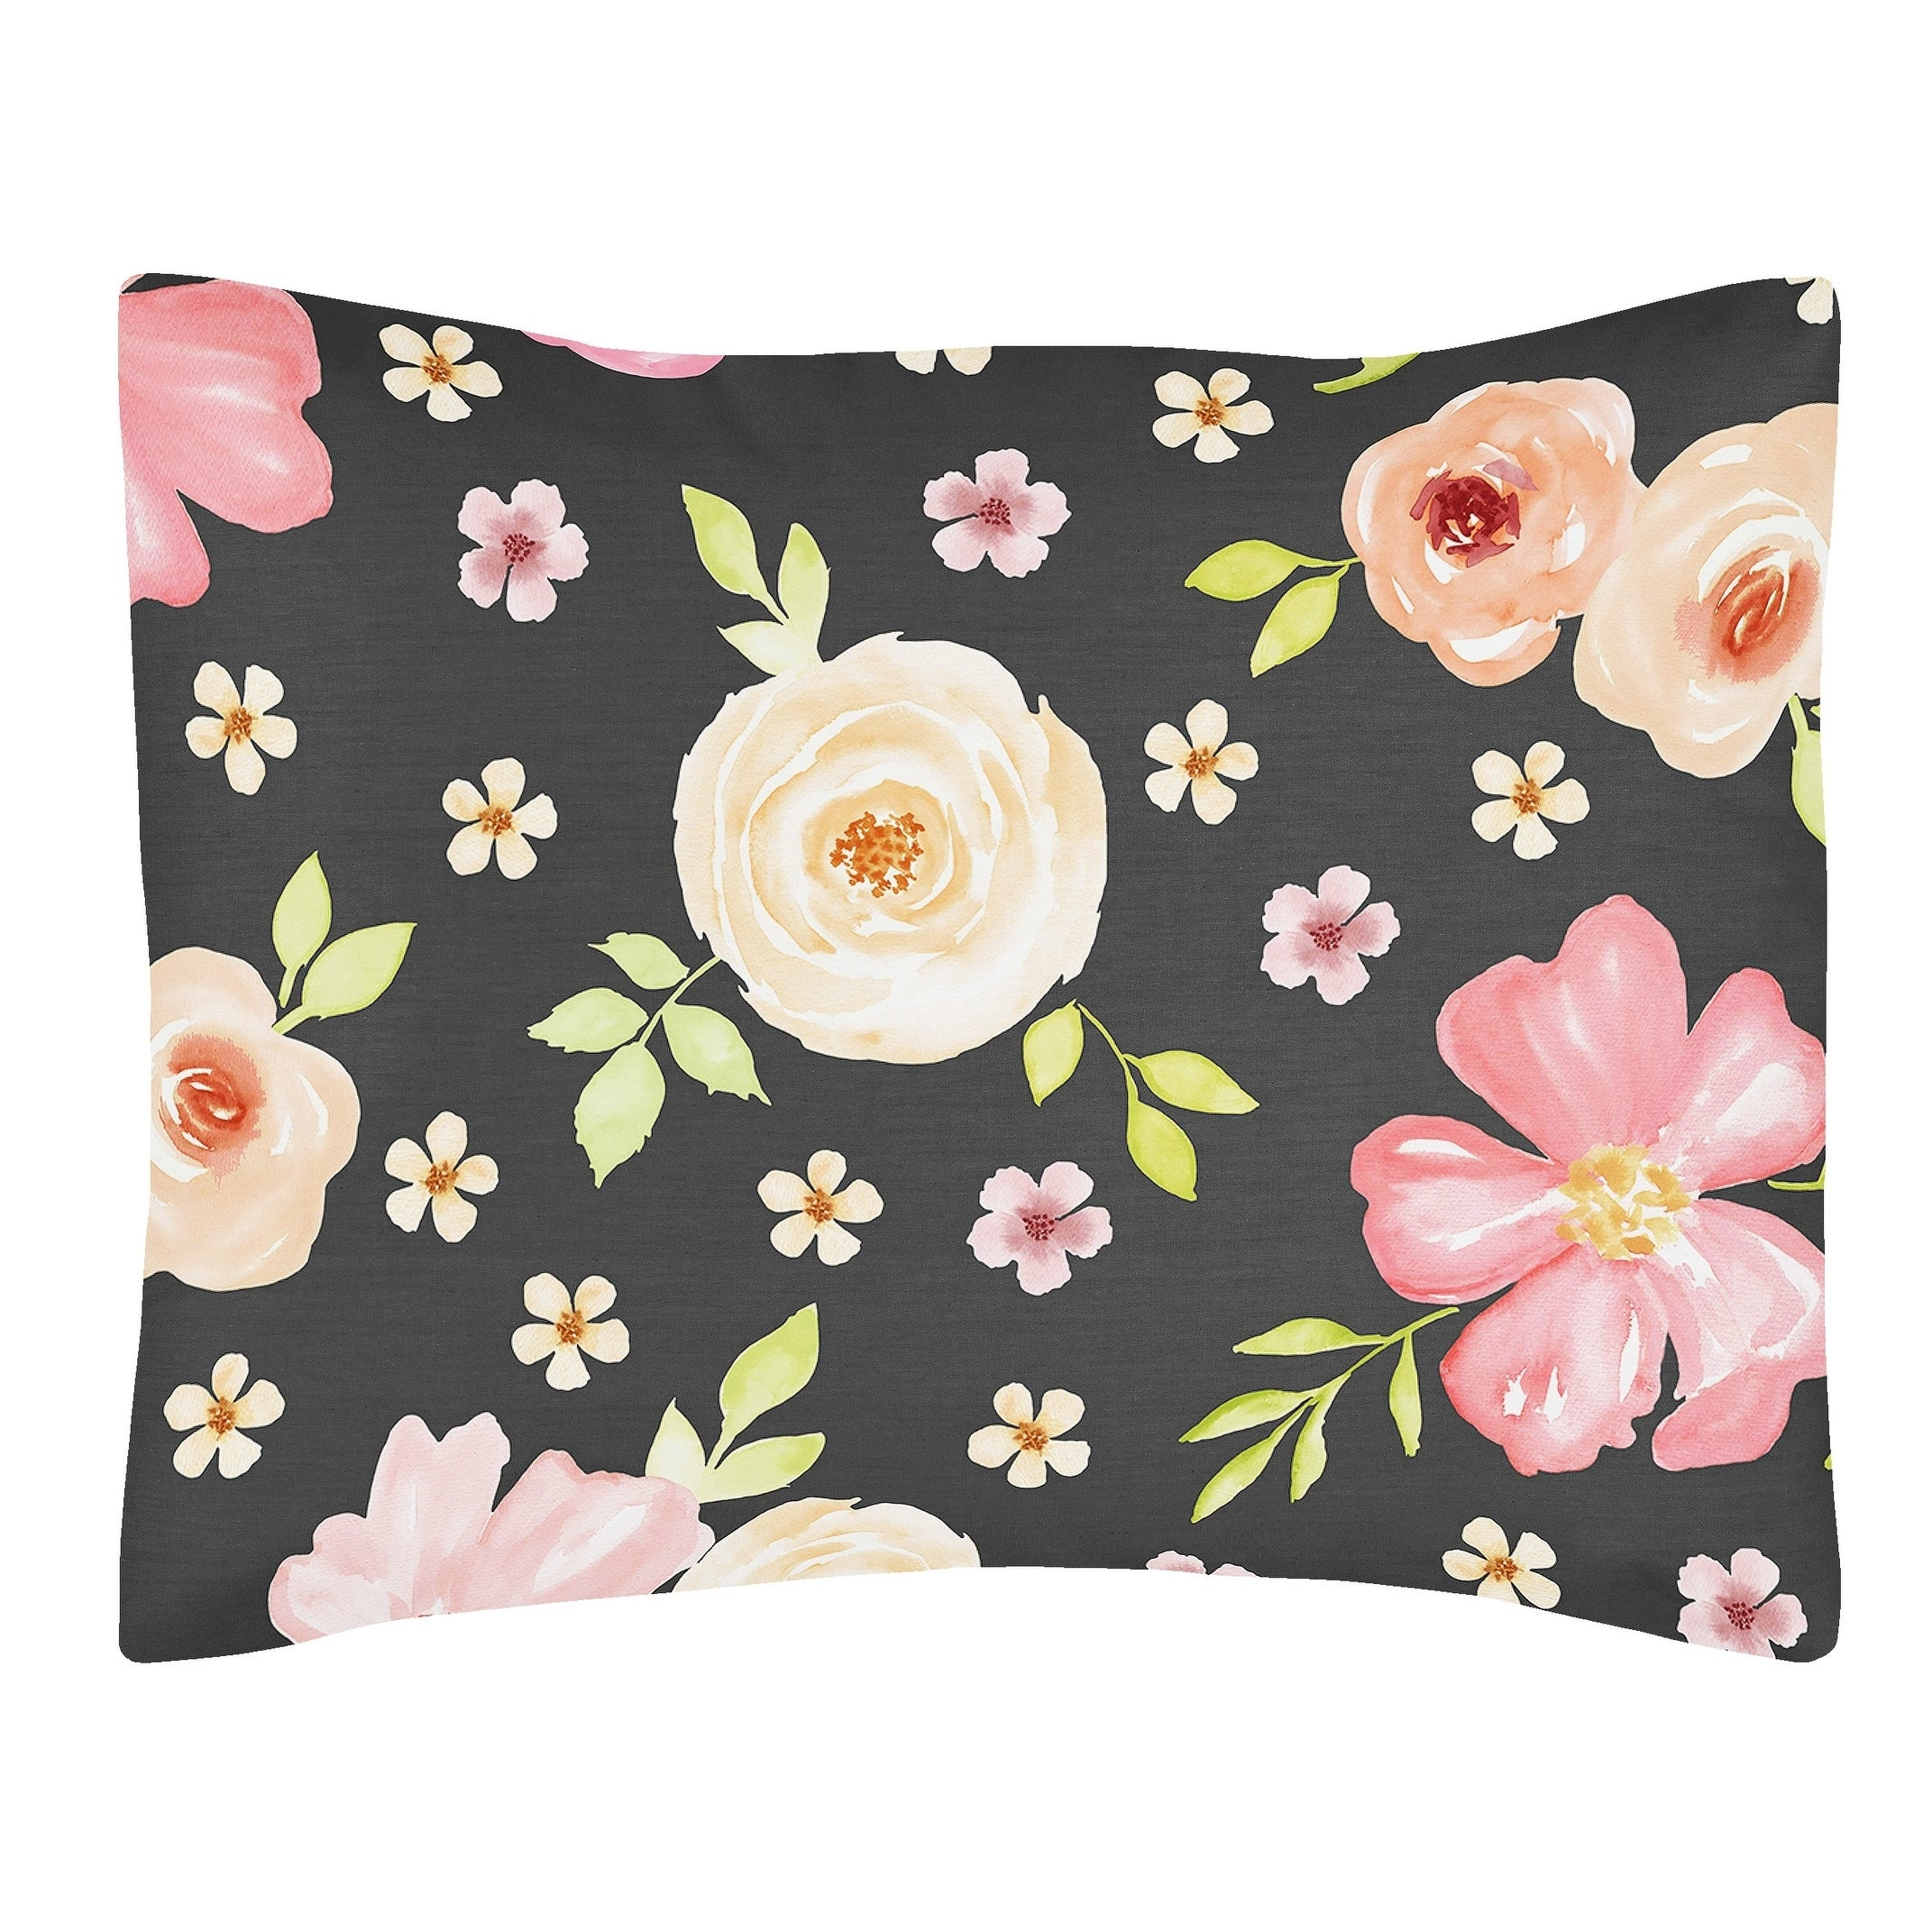 Sweet Jojo Designs Black And Blush Pink Watercolor Floral Collection Standard Pillow Sham Overstock 21218455